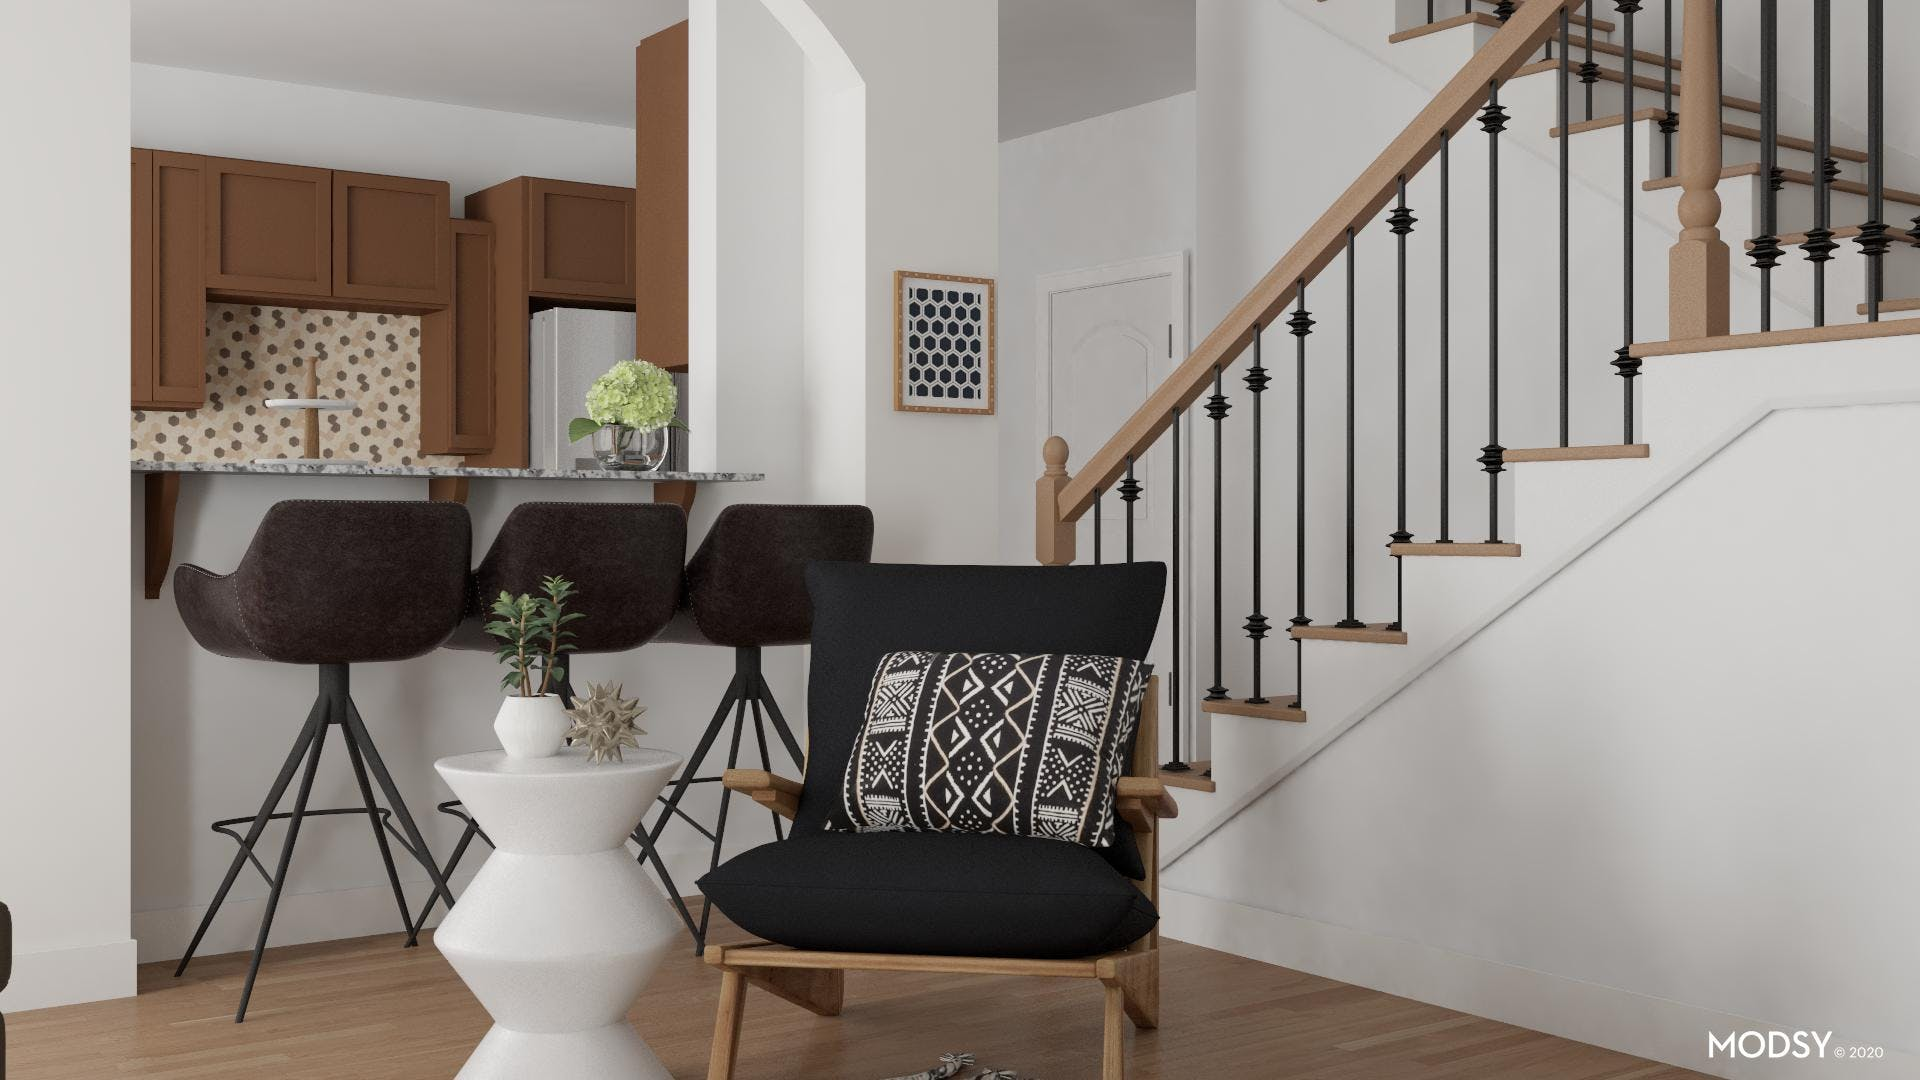 Accent Seating: Eclectic Conversations